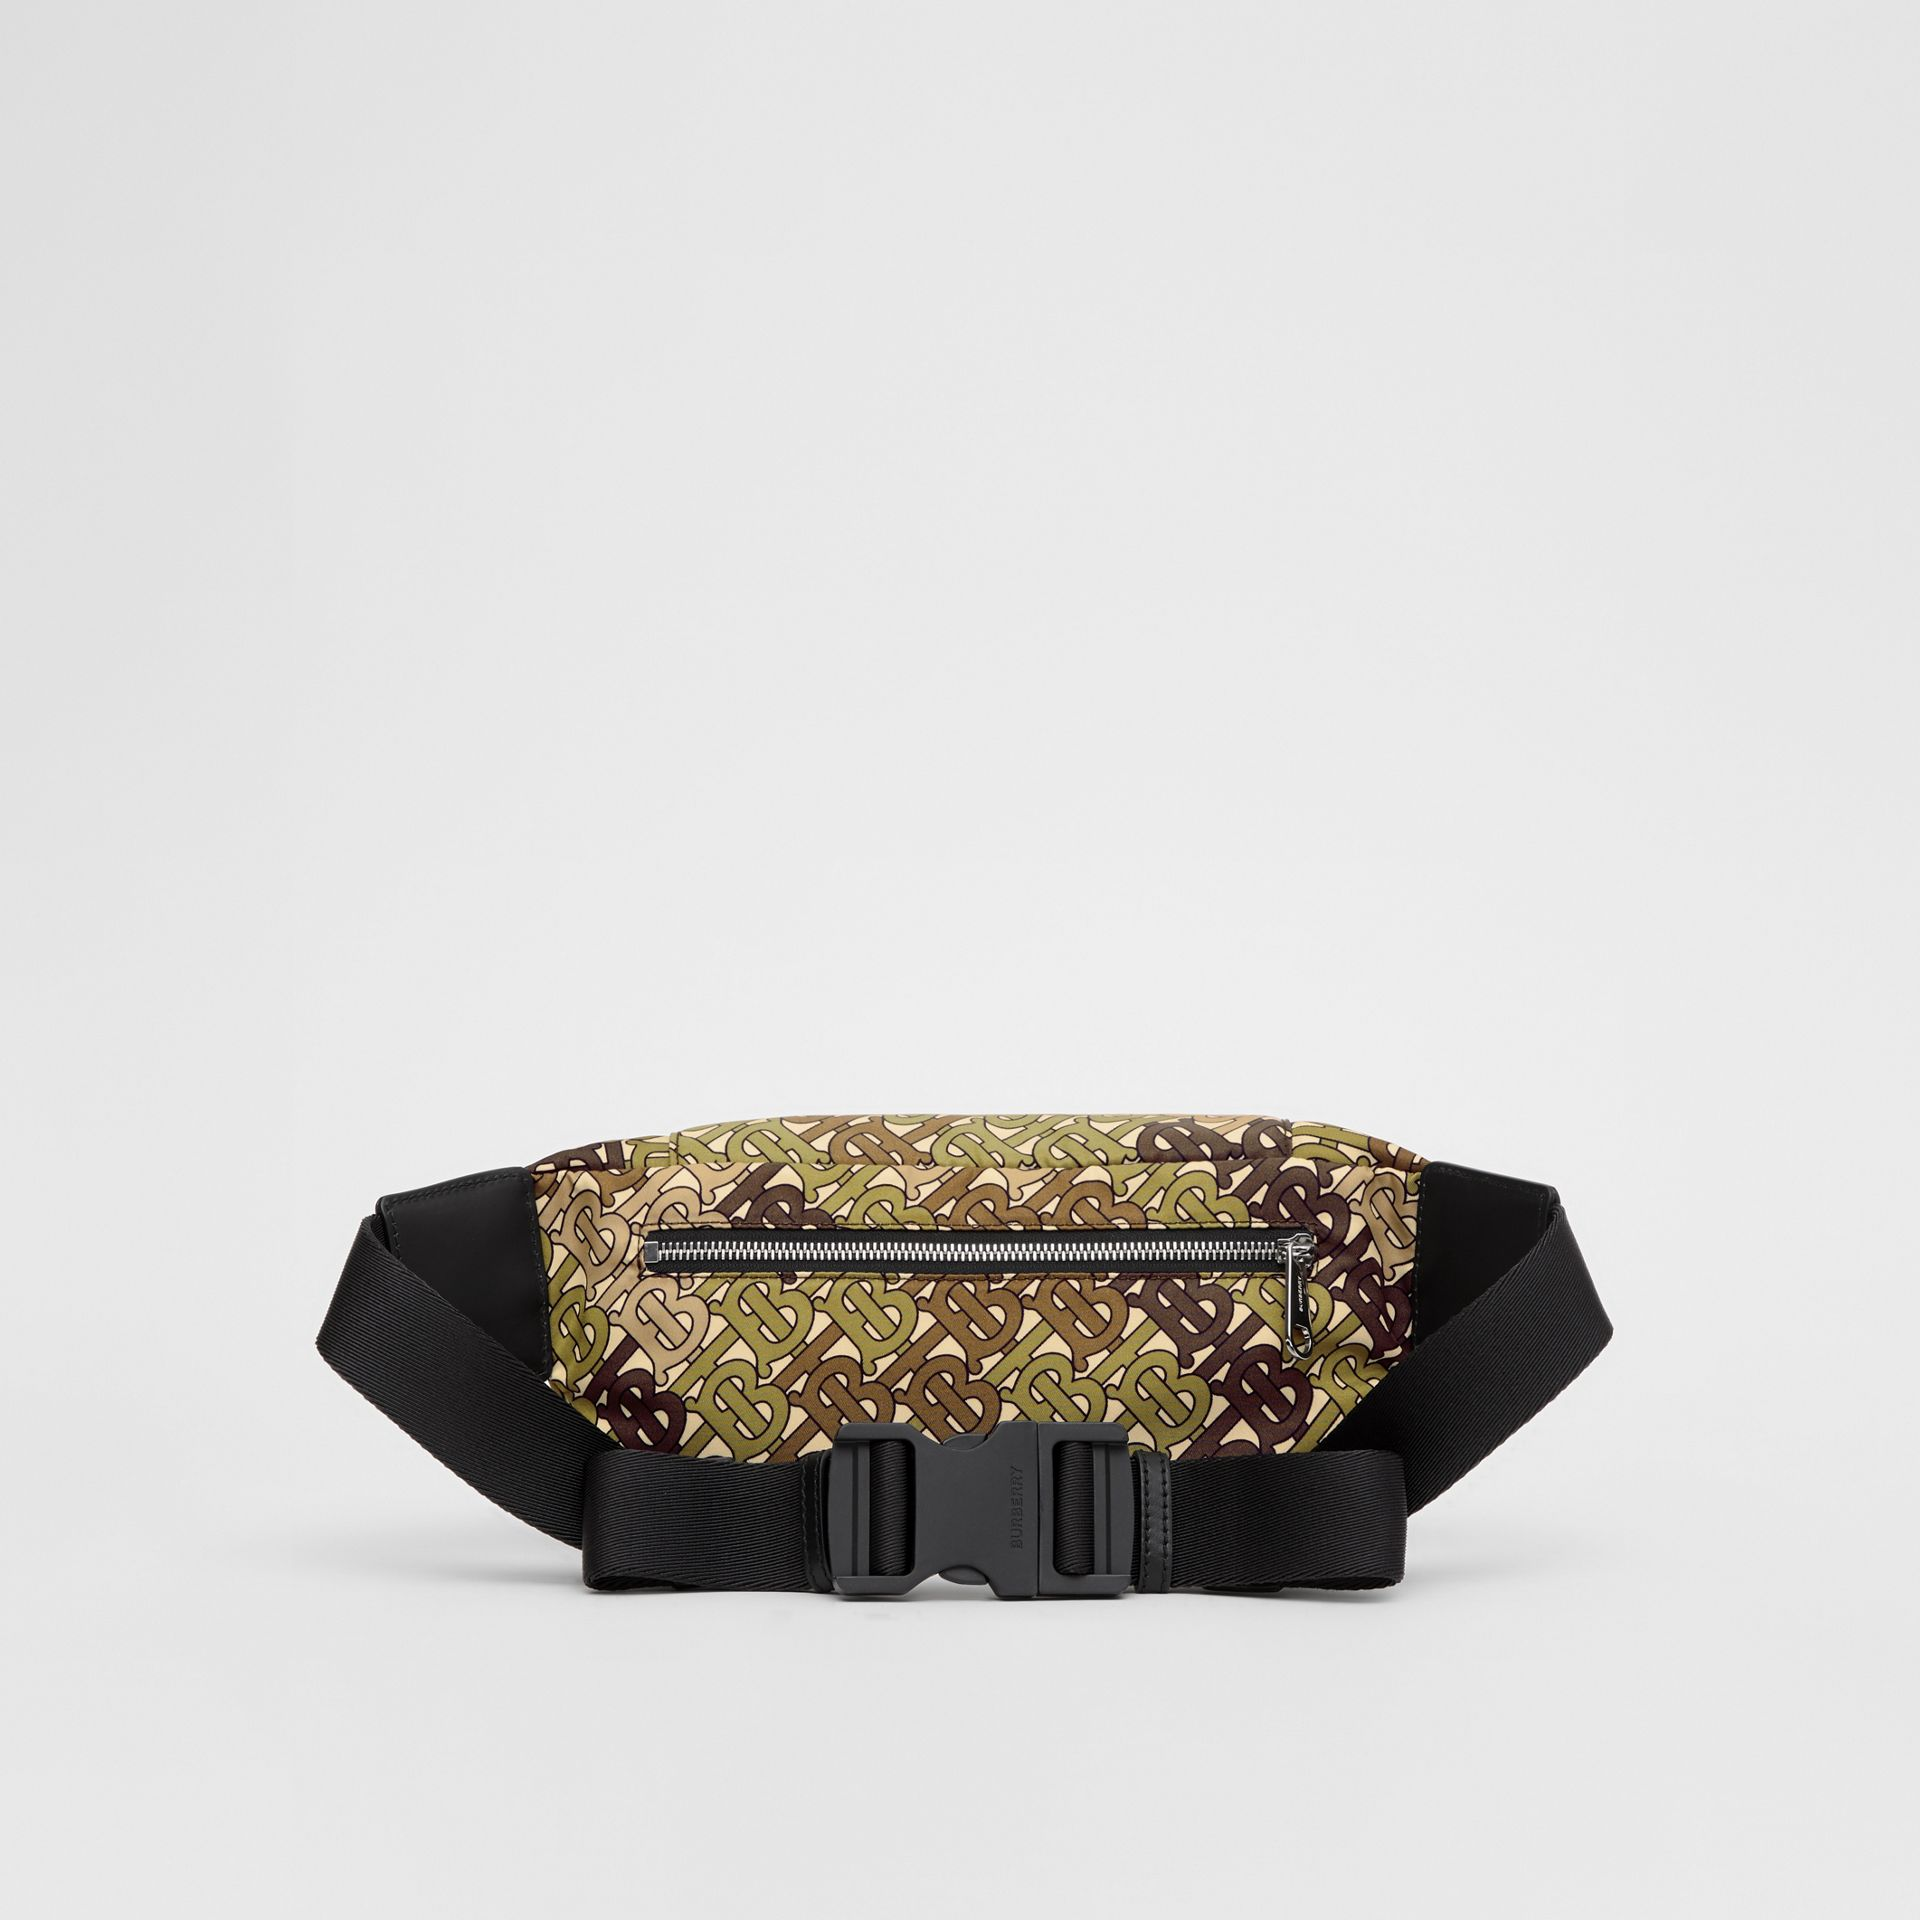 Medium Monogram Print Bum Bag in Khaki Green | Burberry - gallery image 9